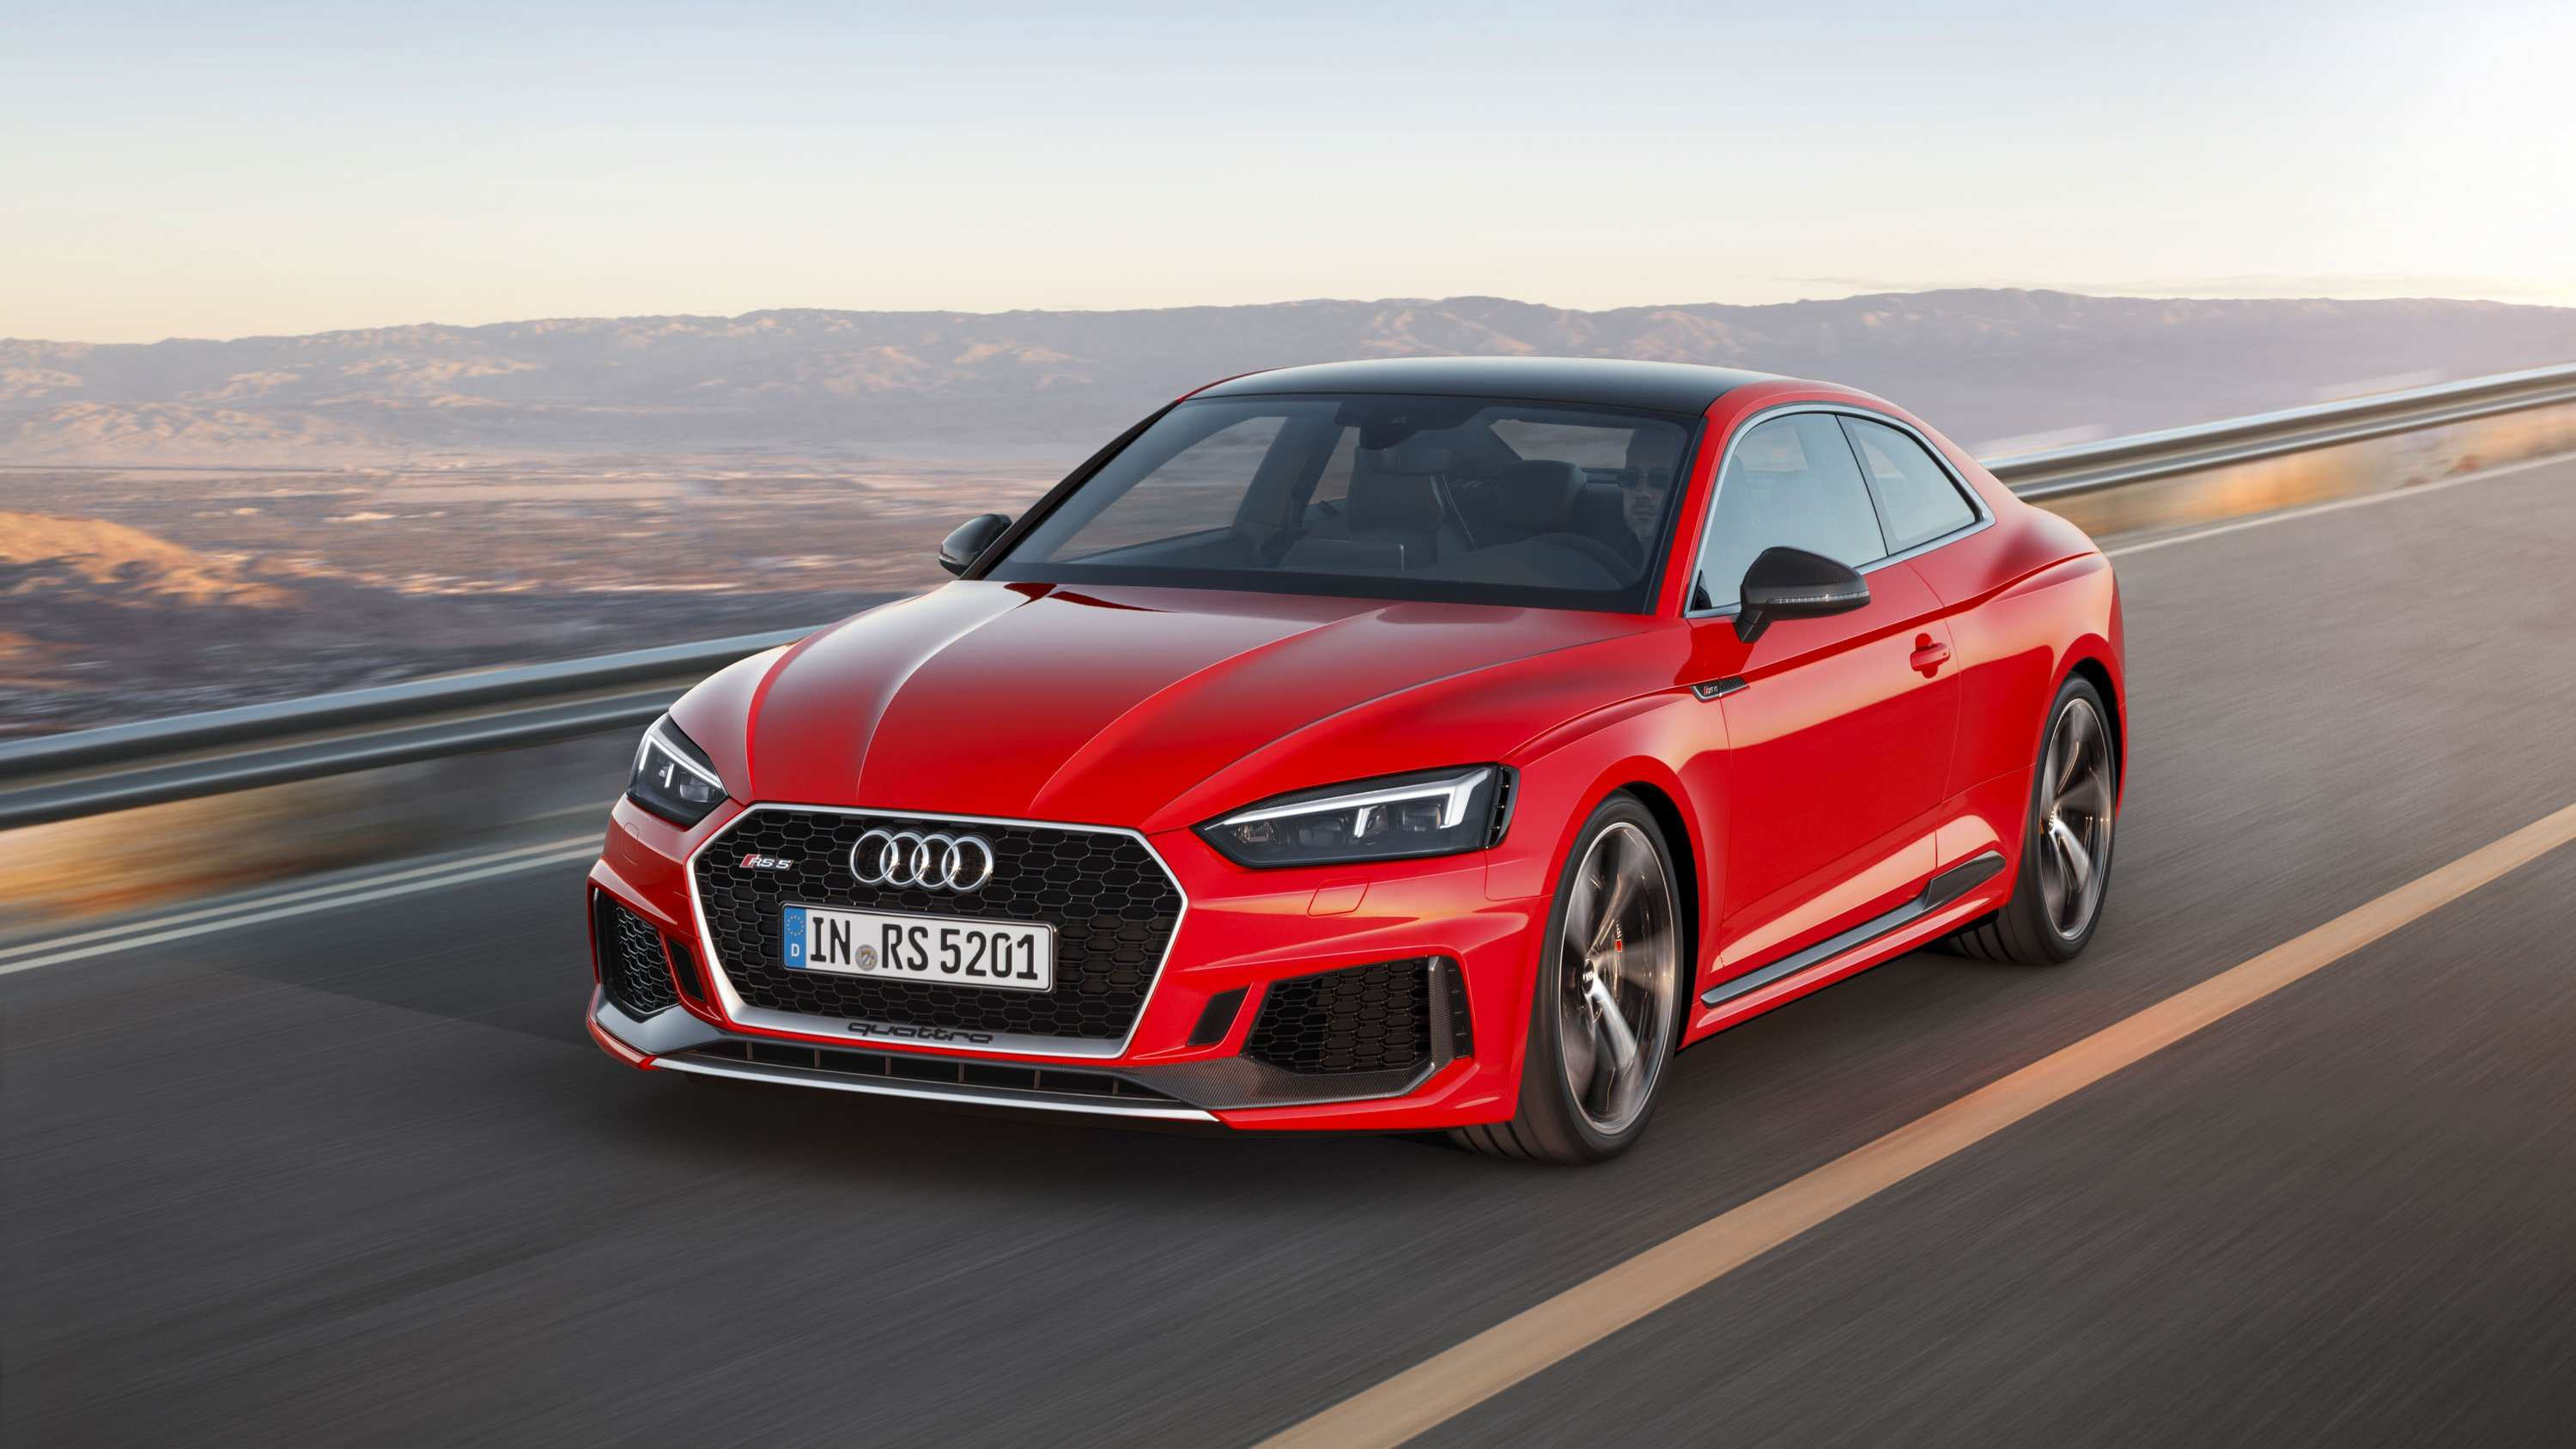 82 A 2019 Audi Rs5 First Drive